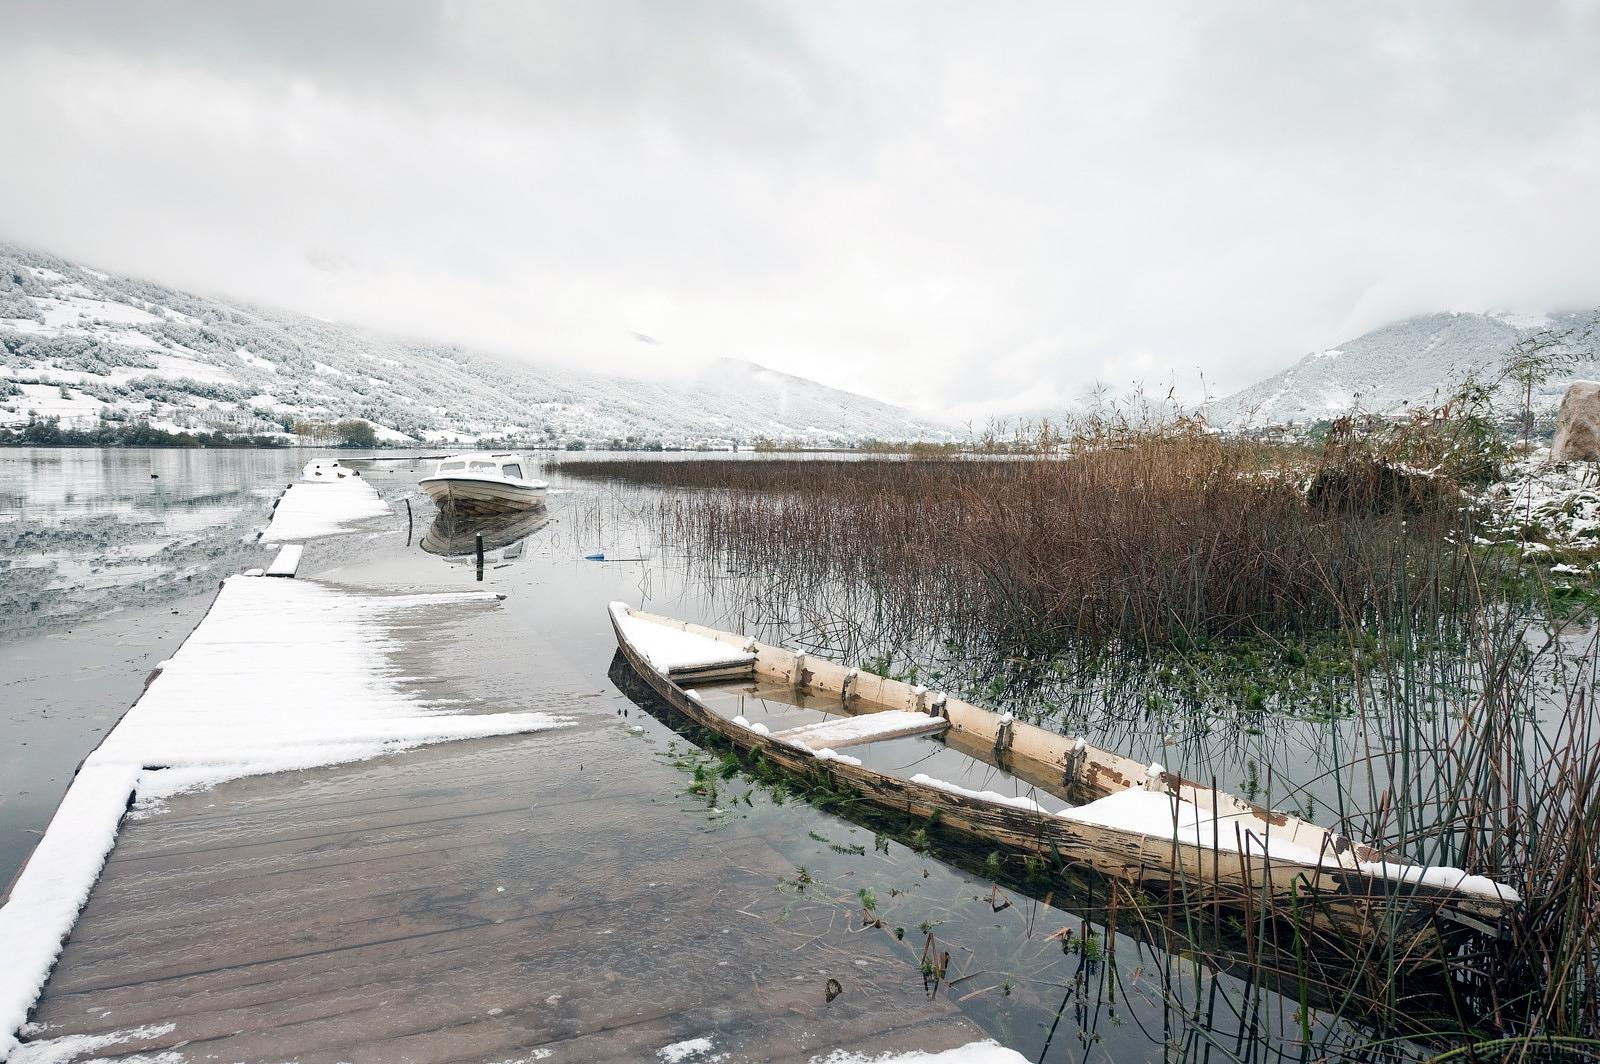 Snow on Lake Plav, Montenegro